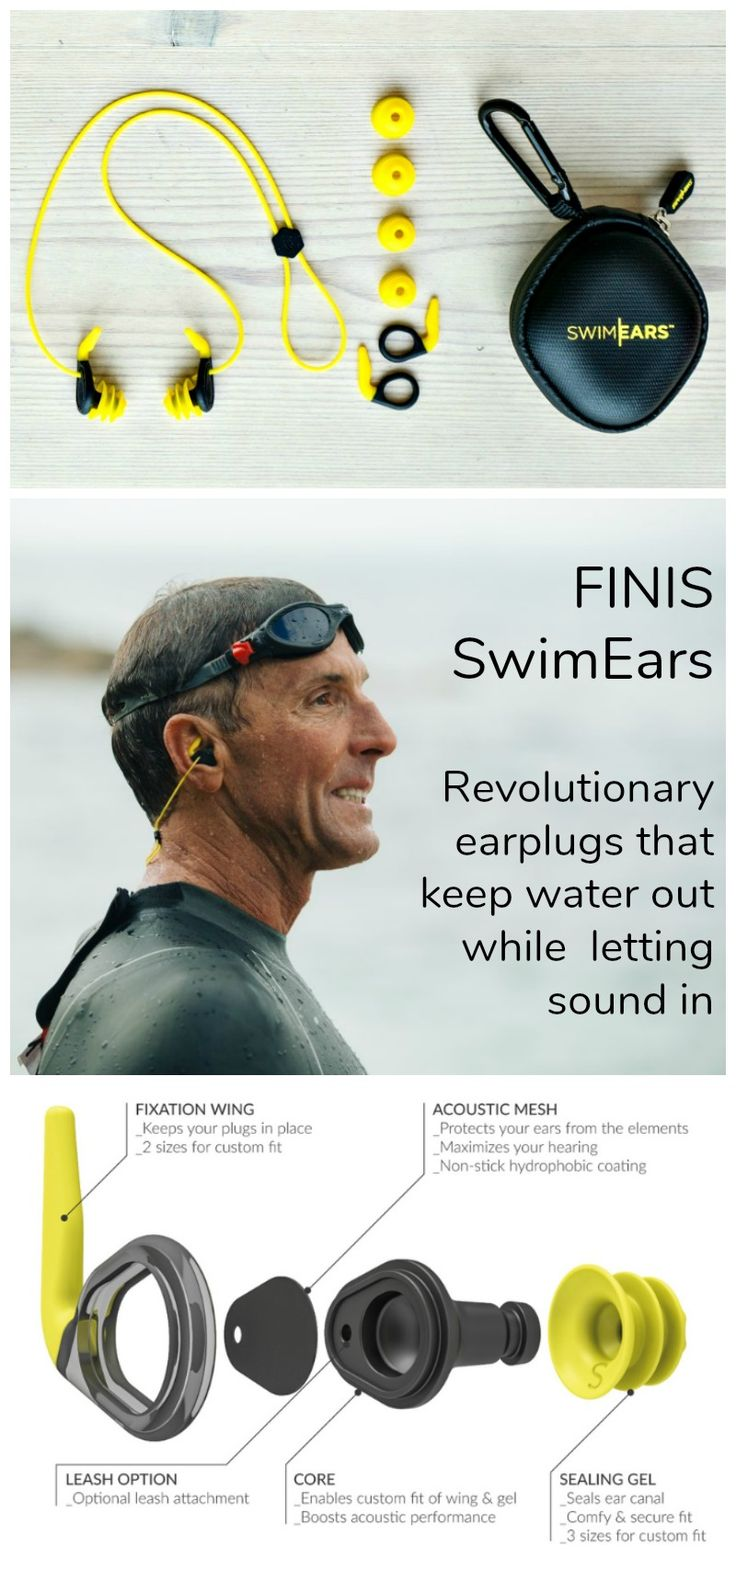 while swimears sound revolutionary finis feature design